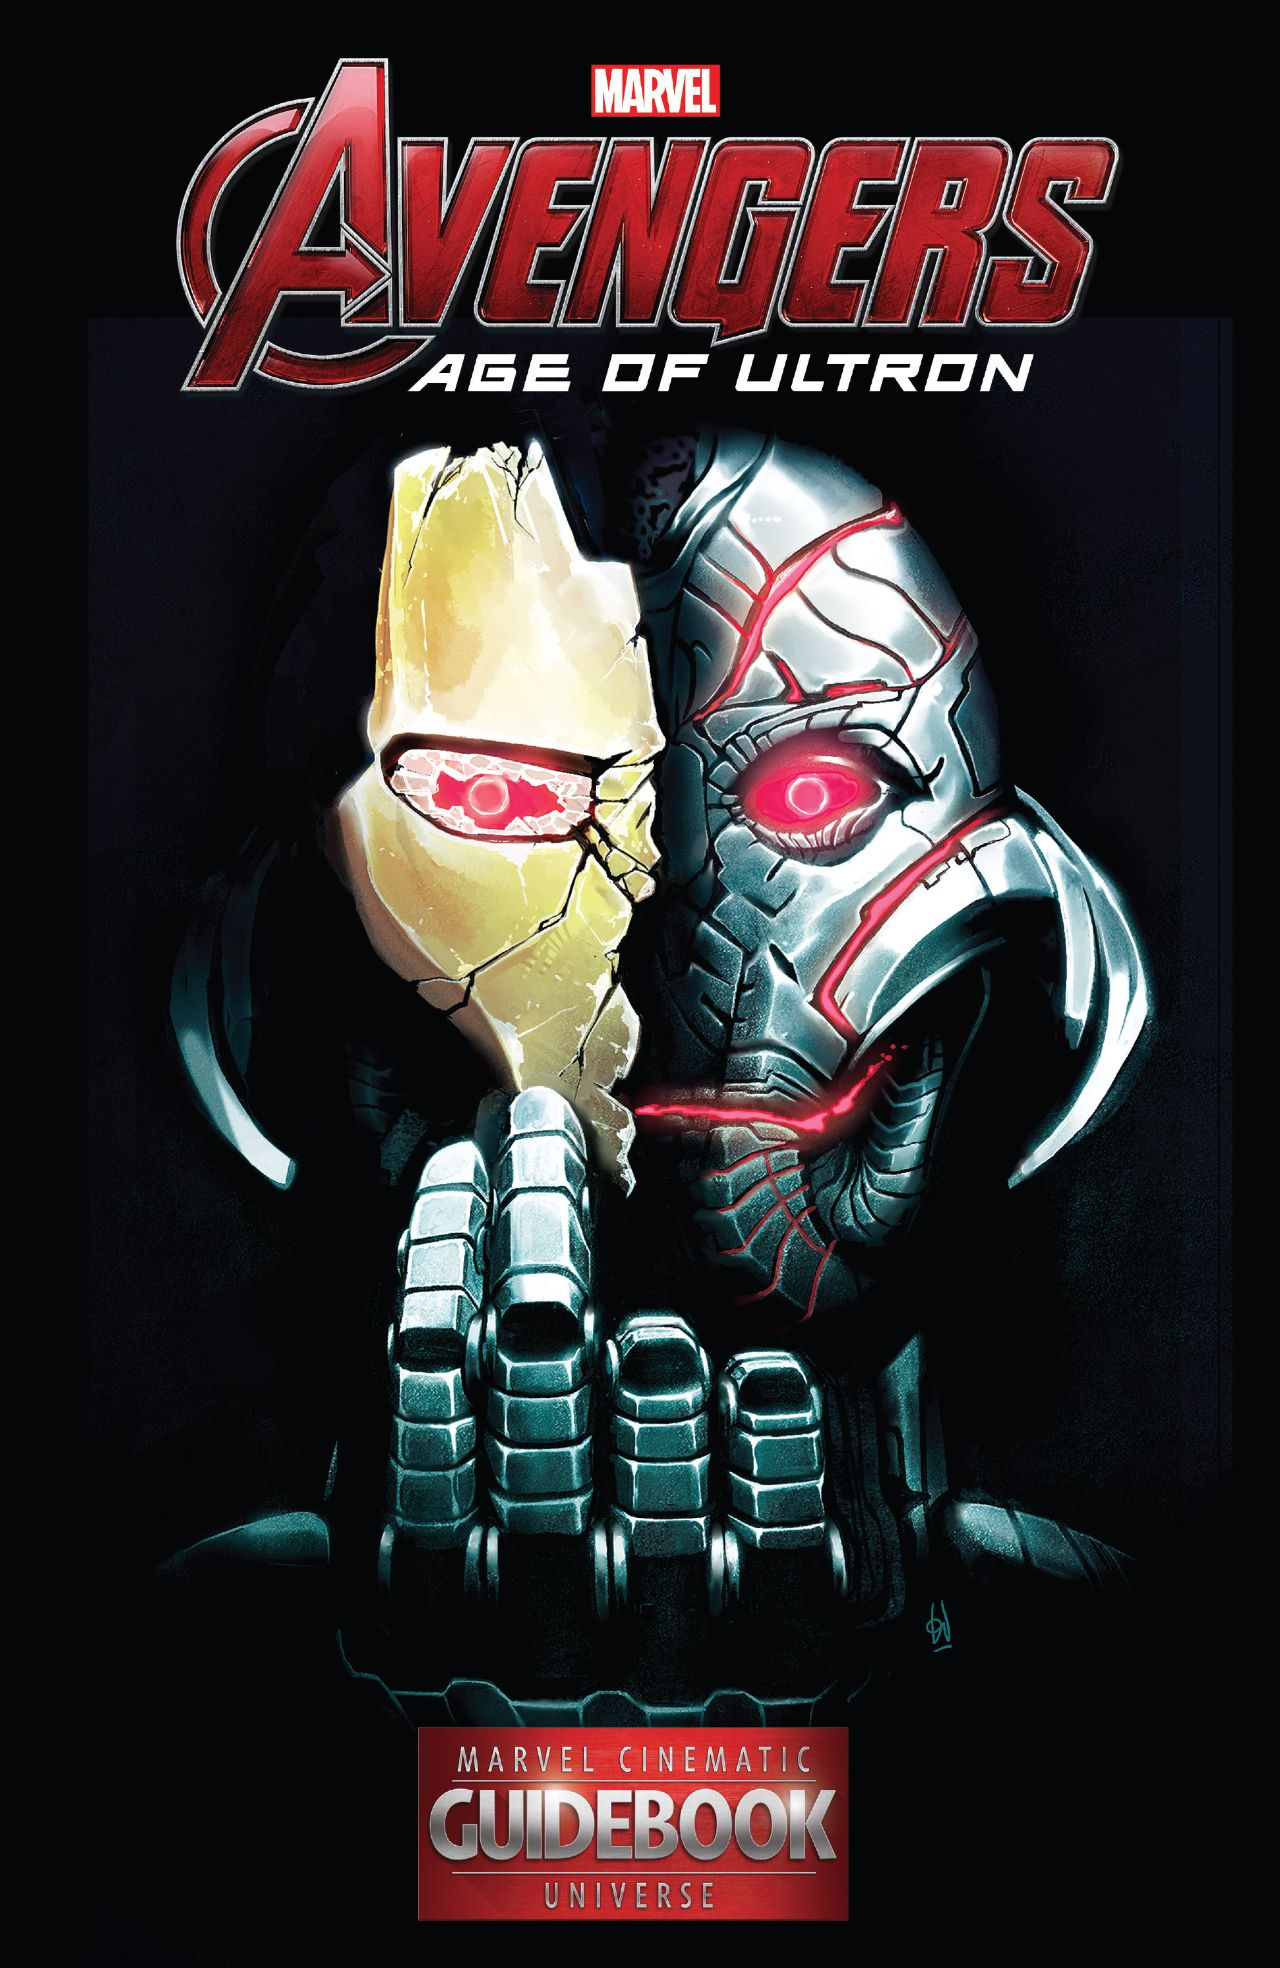 Guidebook to the Marvel Cinematic Universe - Avengers: Age of Ultron